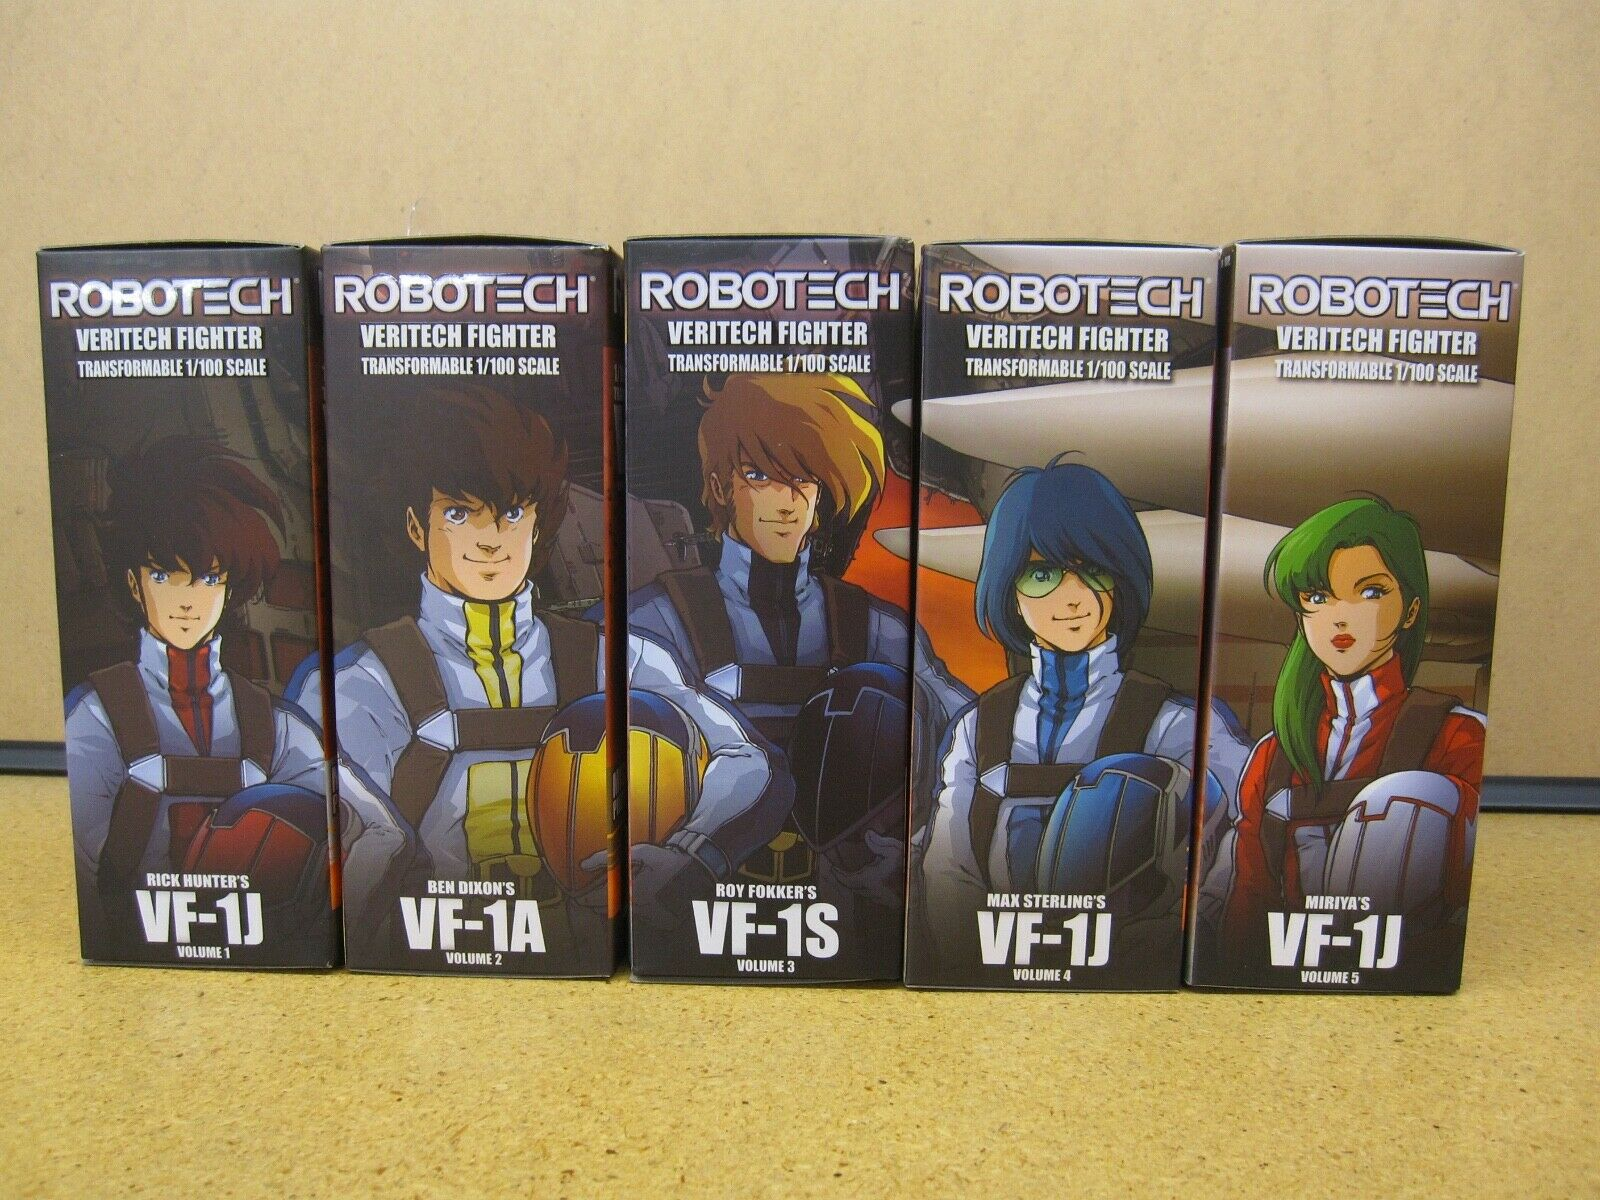 Robotech Macross Transformable 1 100 Scale Veritechs with Pilots - New MIB